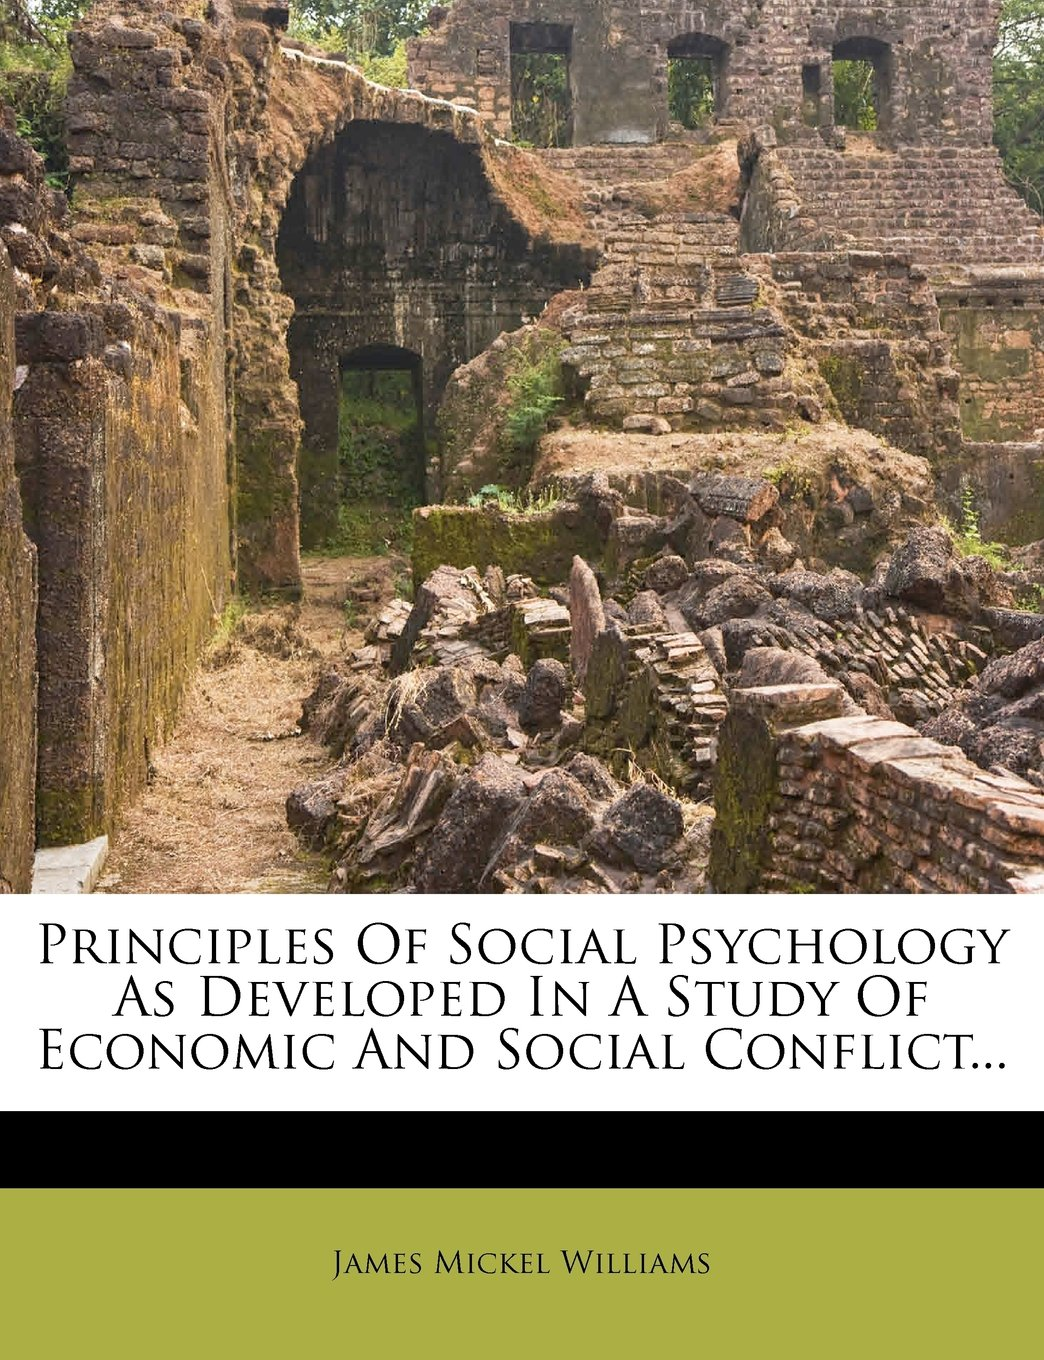 Principles Of Social Psychology As Developed In A Study Of Economic And Social Conflict... ebook